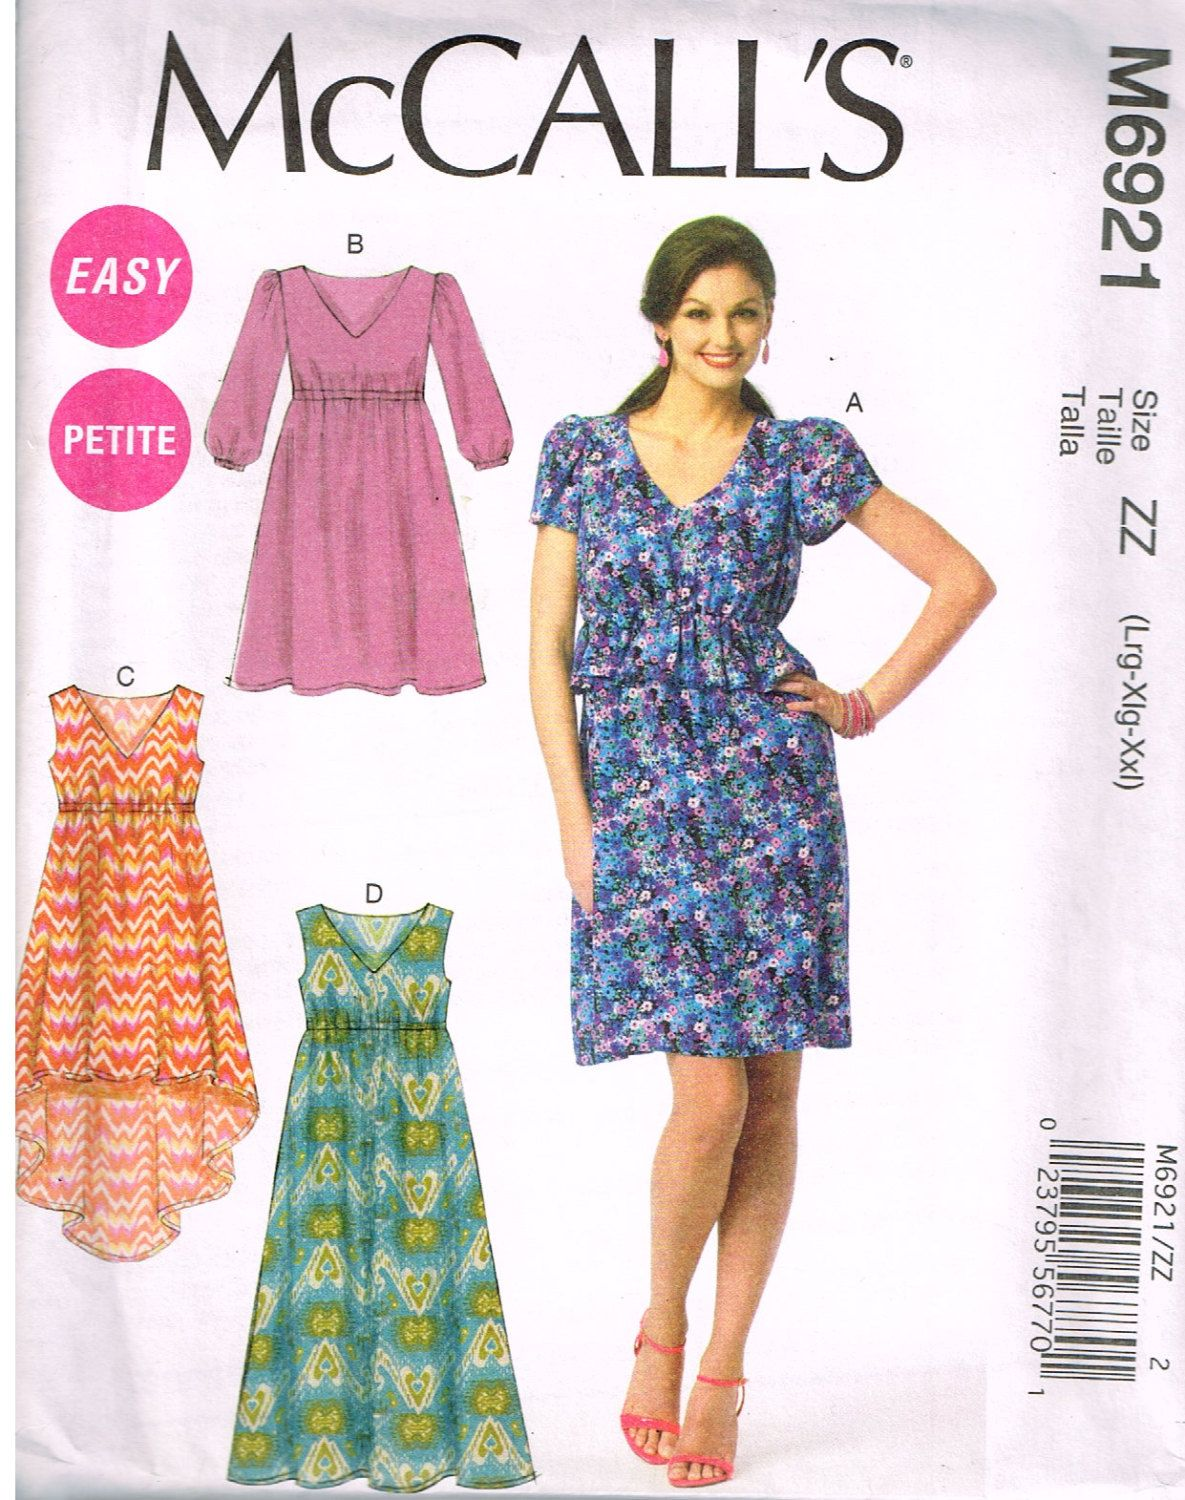 Mccallus m sewing pattern missesu dresses size lrg xl xxl